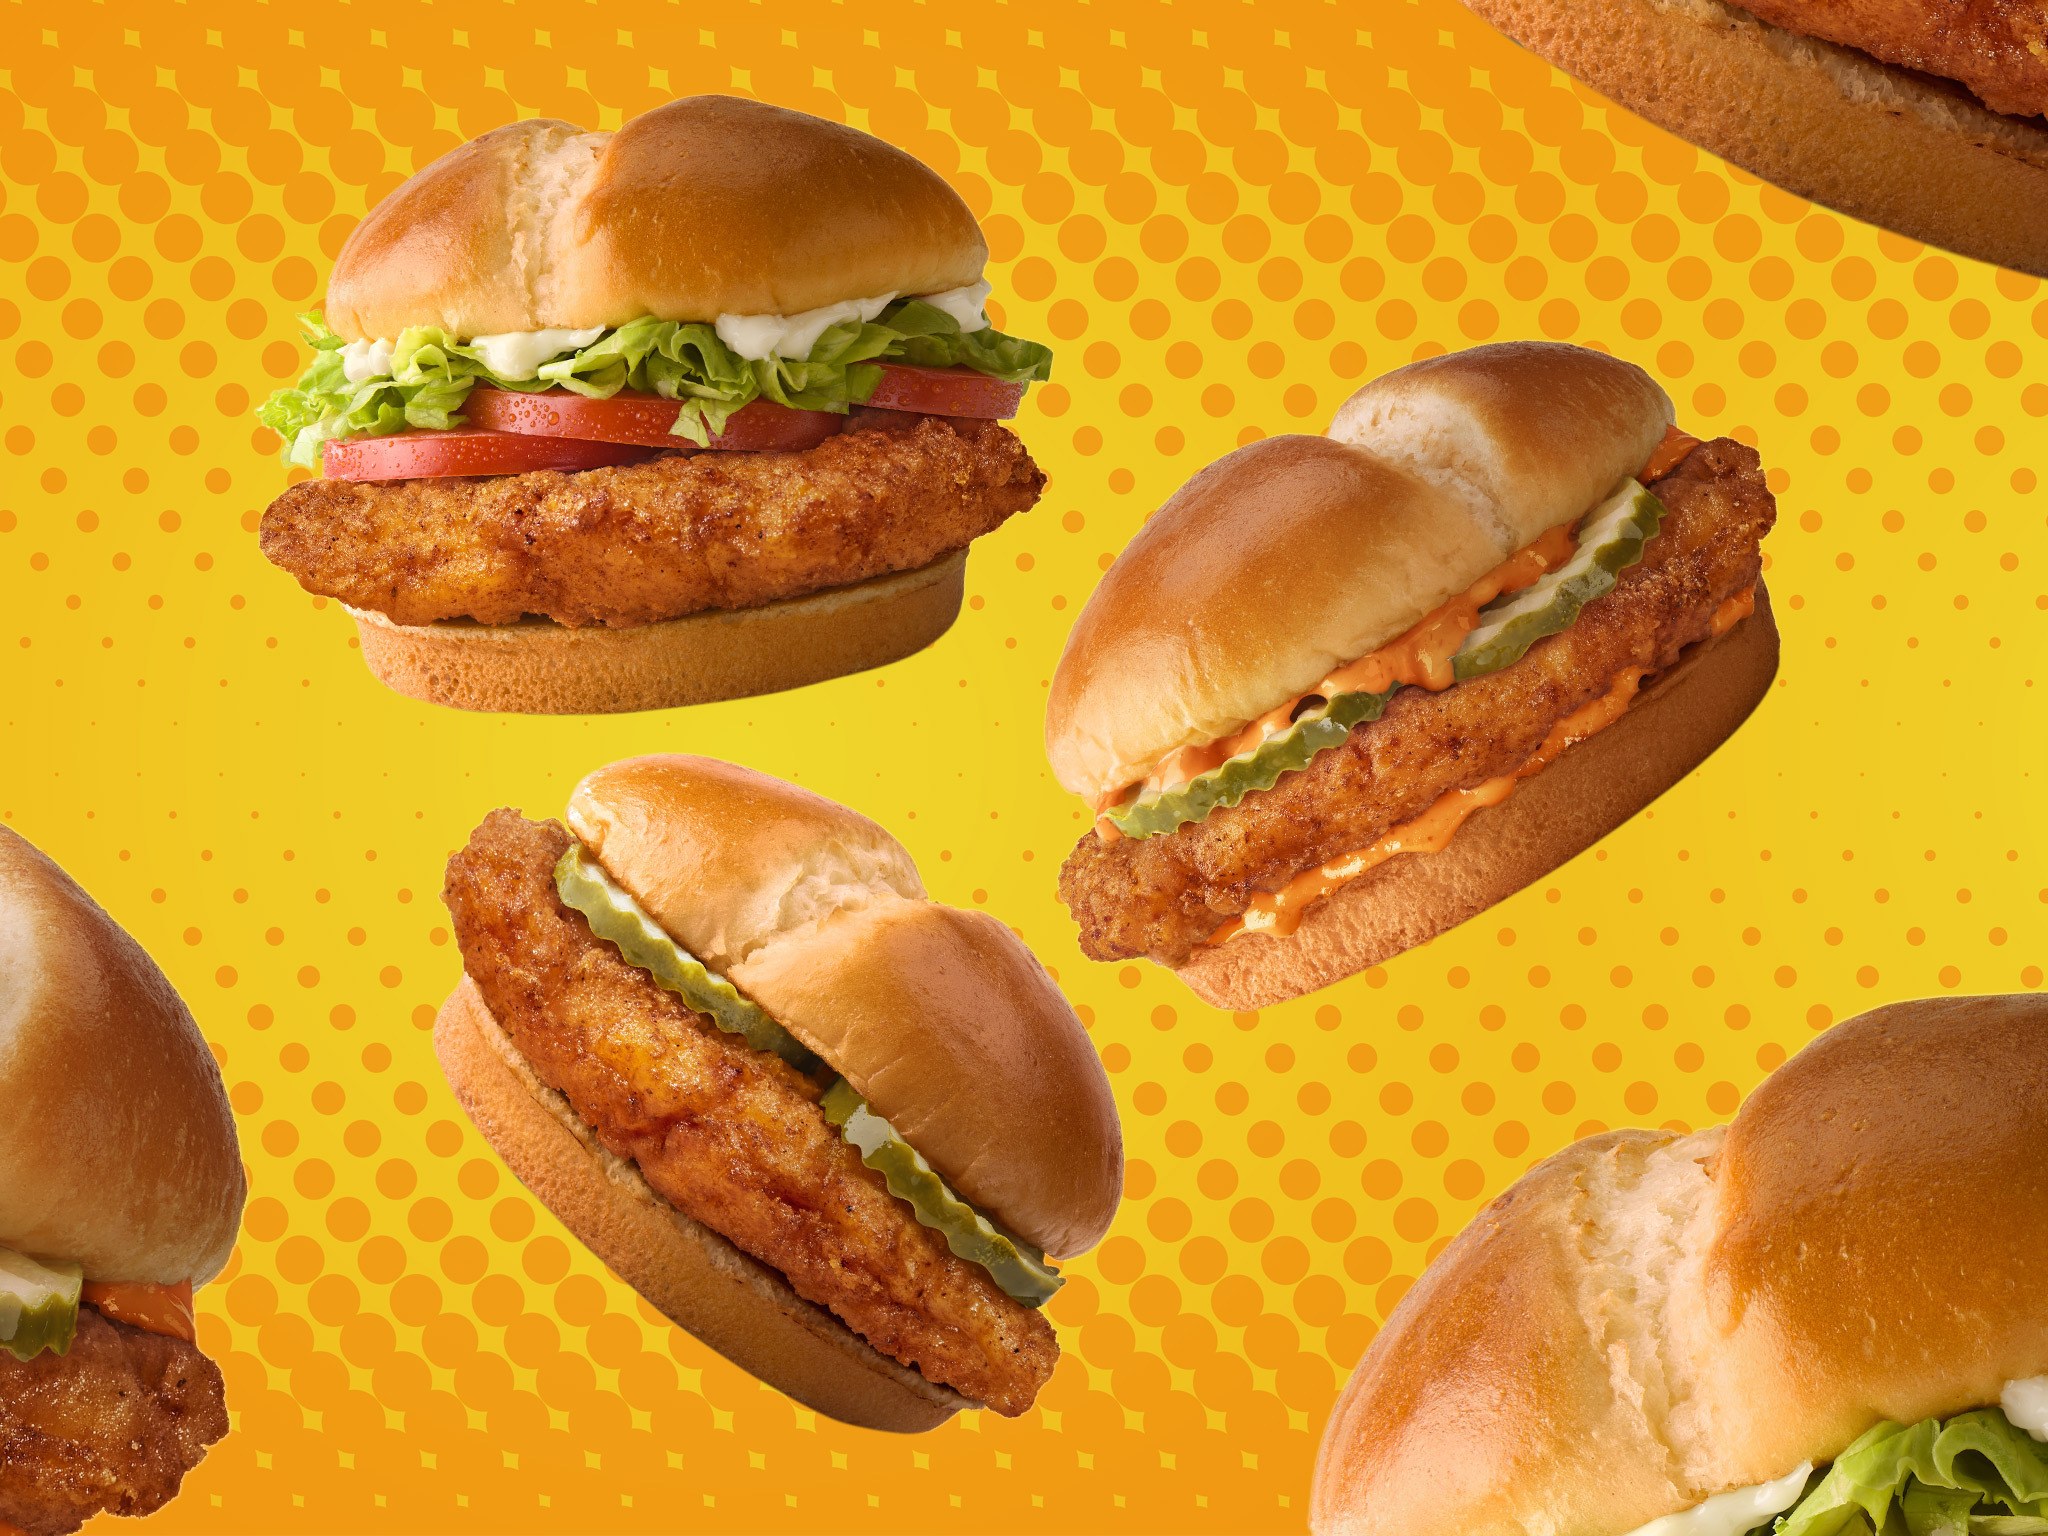 We tried all three of McDonald's new fried chicken sandwiches to find out which one is best